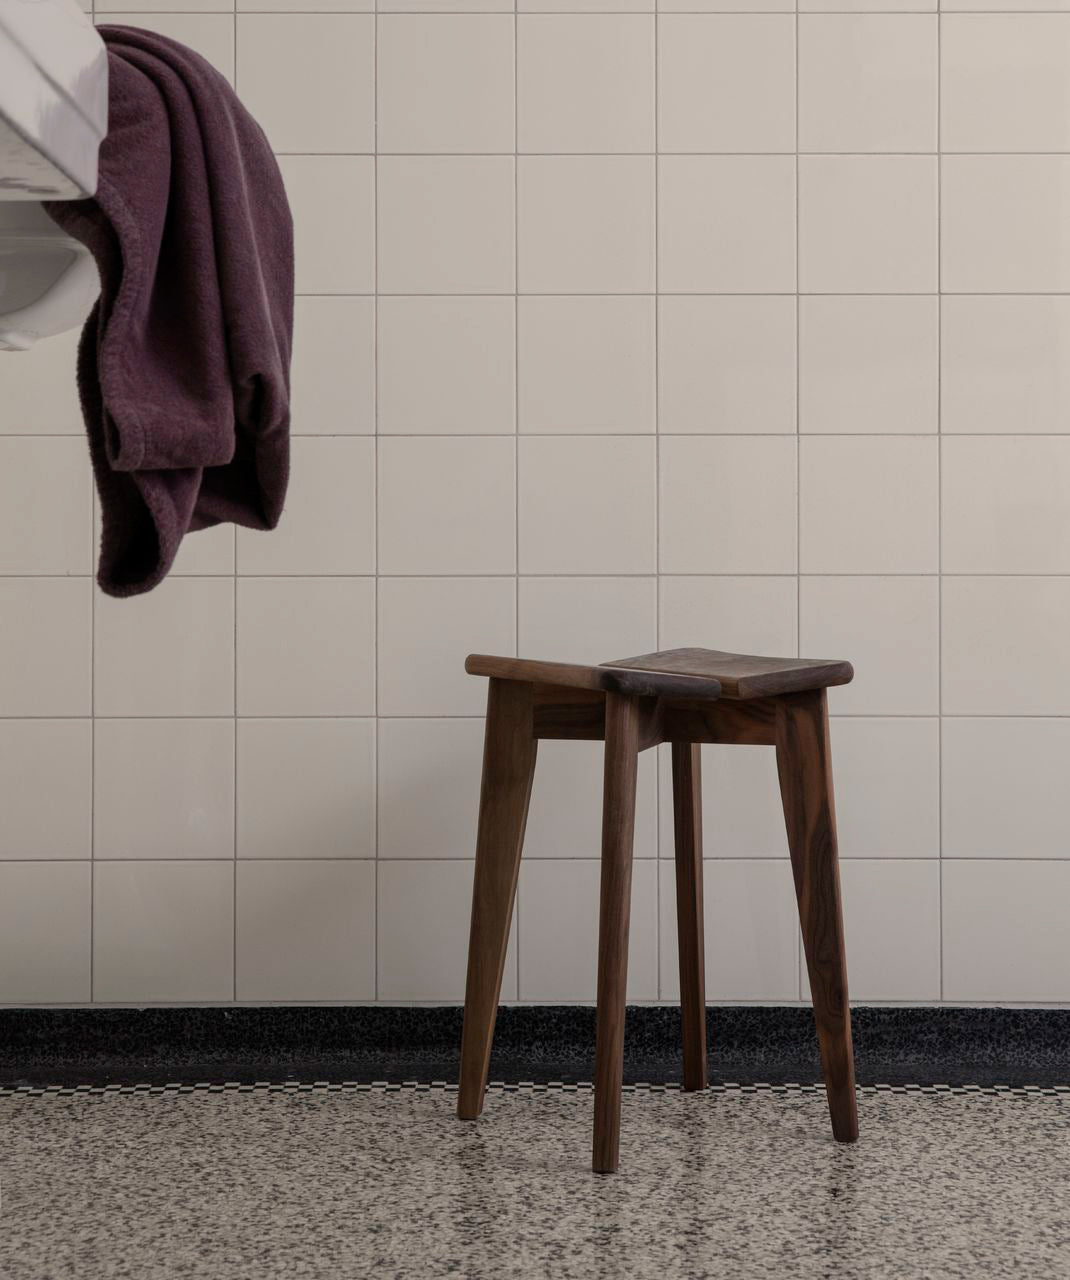 Trèfle Stool, Black Stained Oak Matt Lacquered fra GUBI